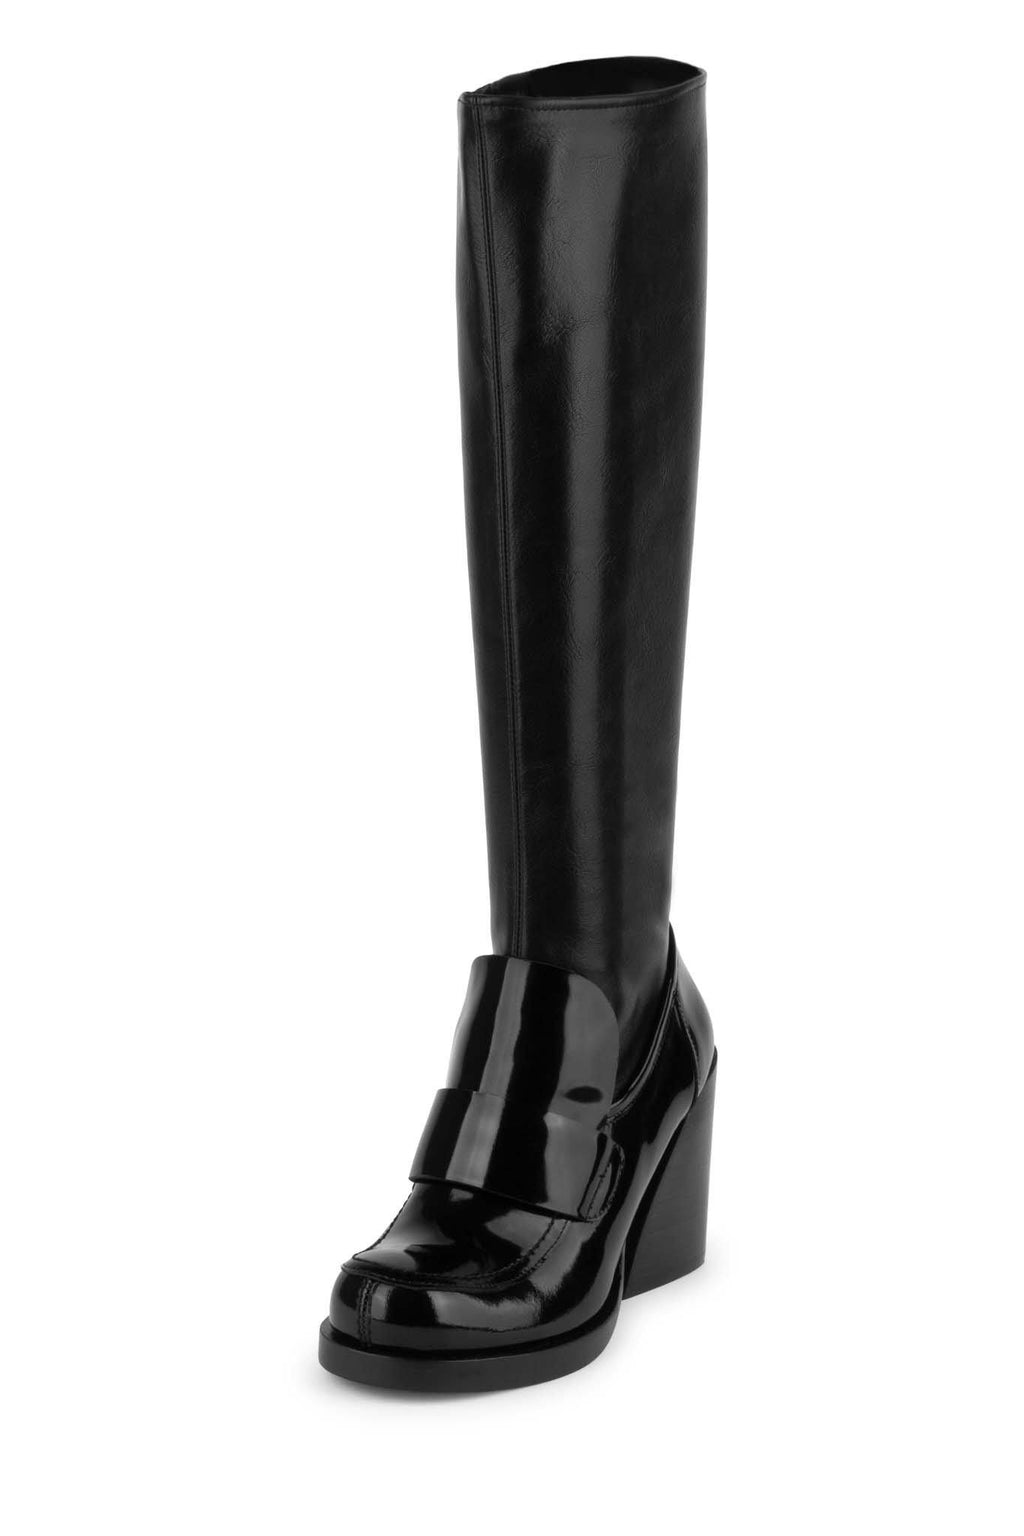 BRIALY-KH Knee-High Boot YYH